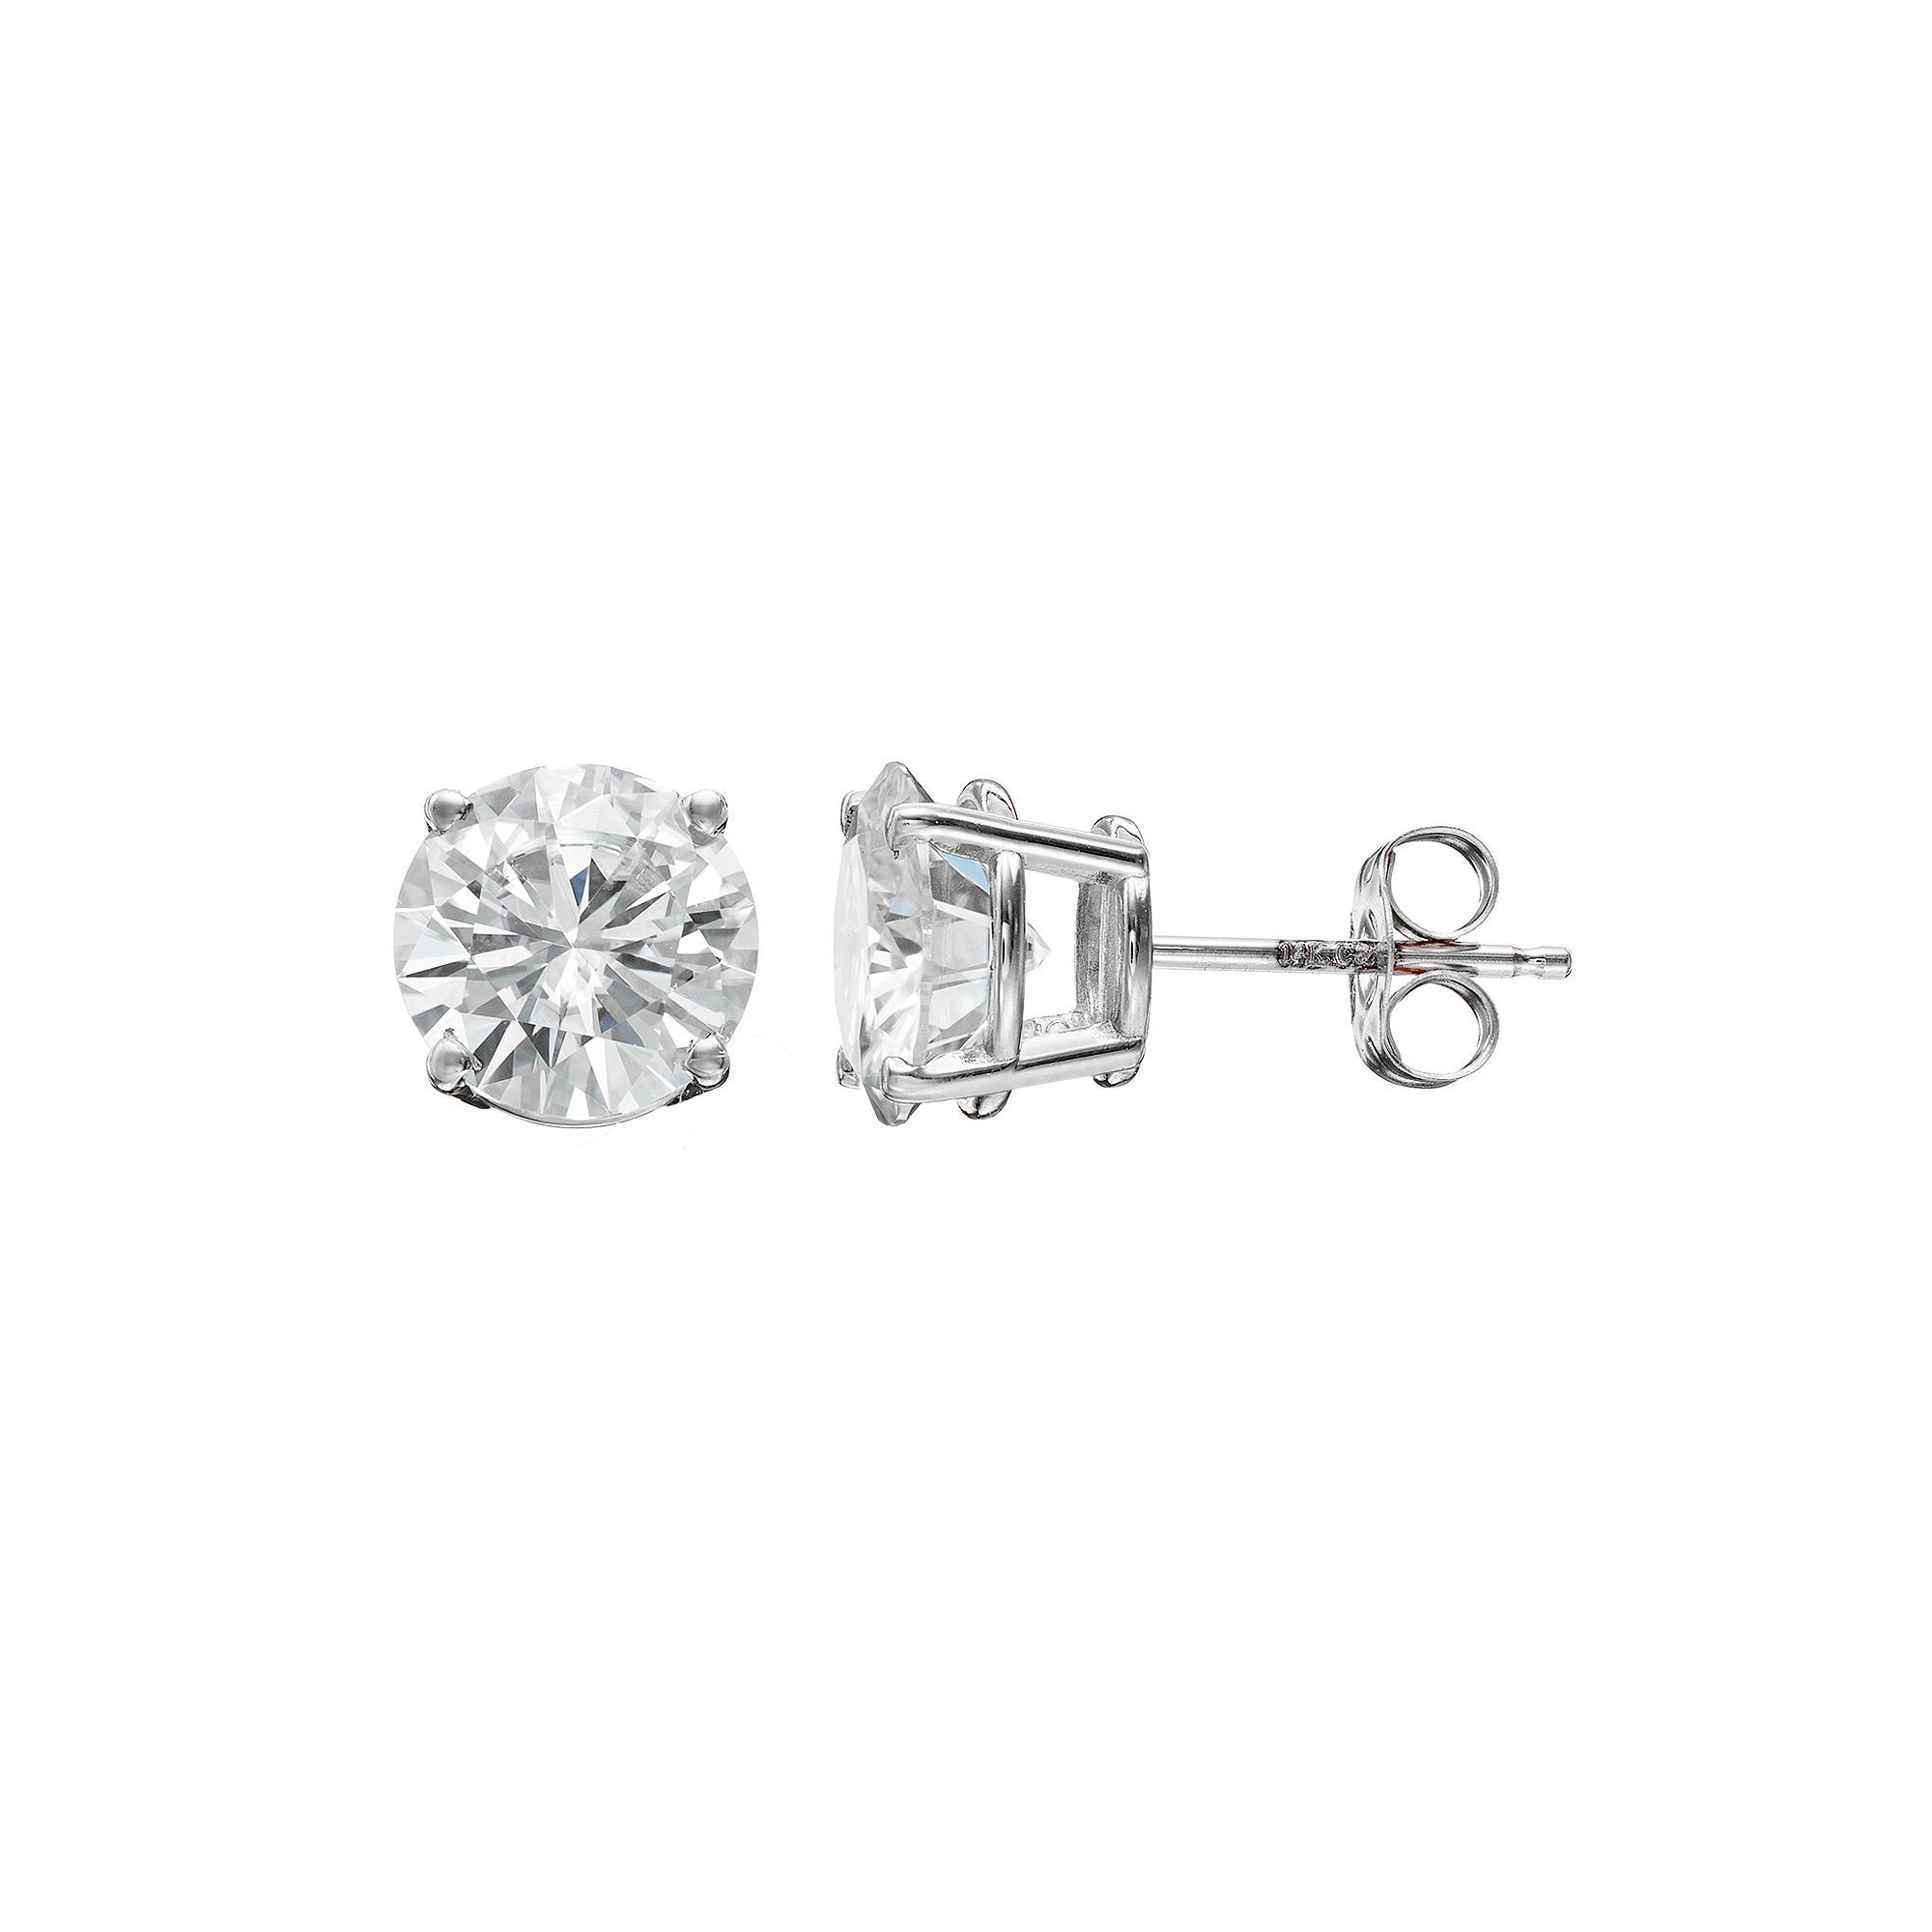 de fleur moissanite jewellery premium earring moissy fine lis earrings products cushion